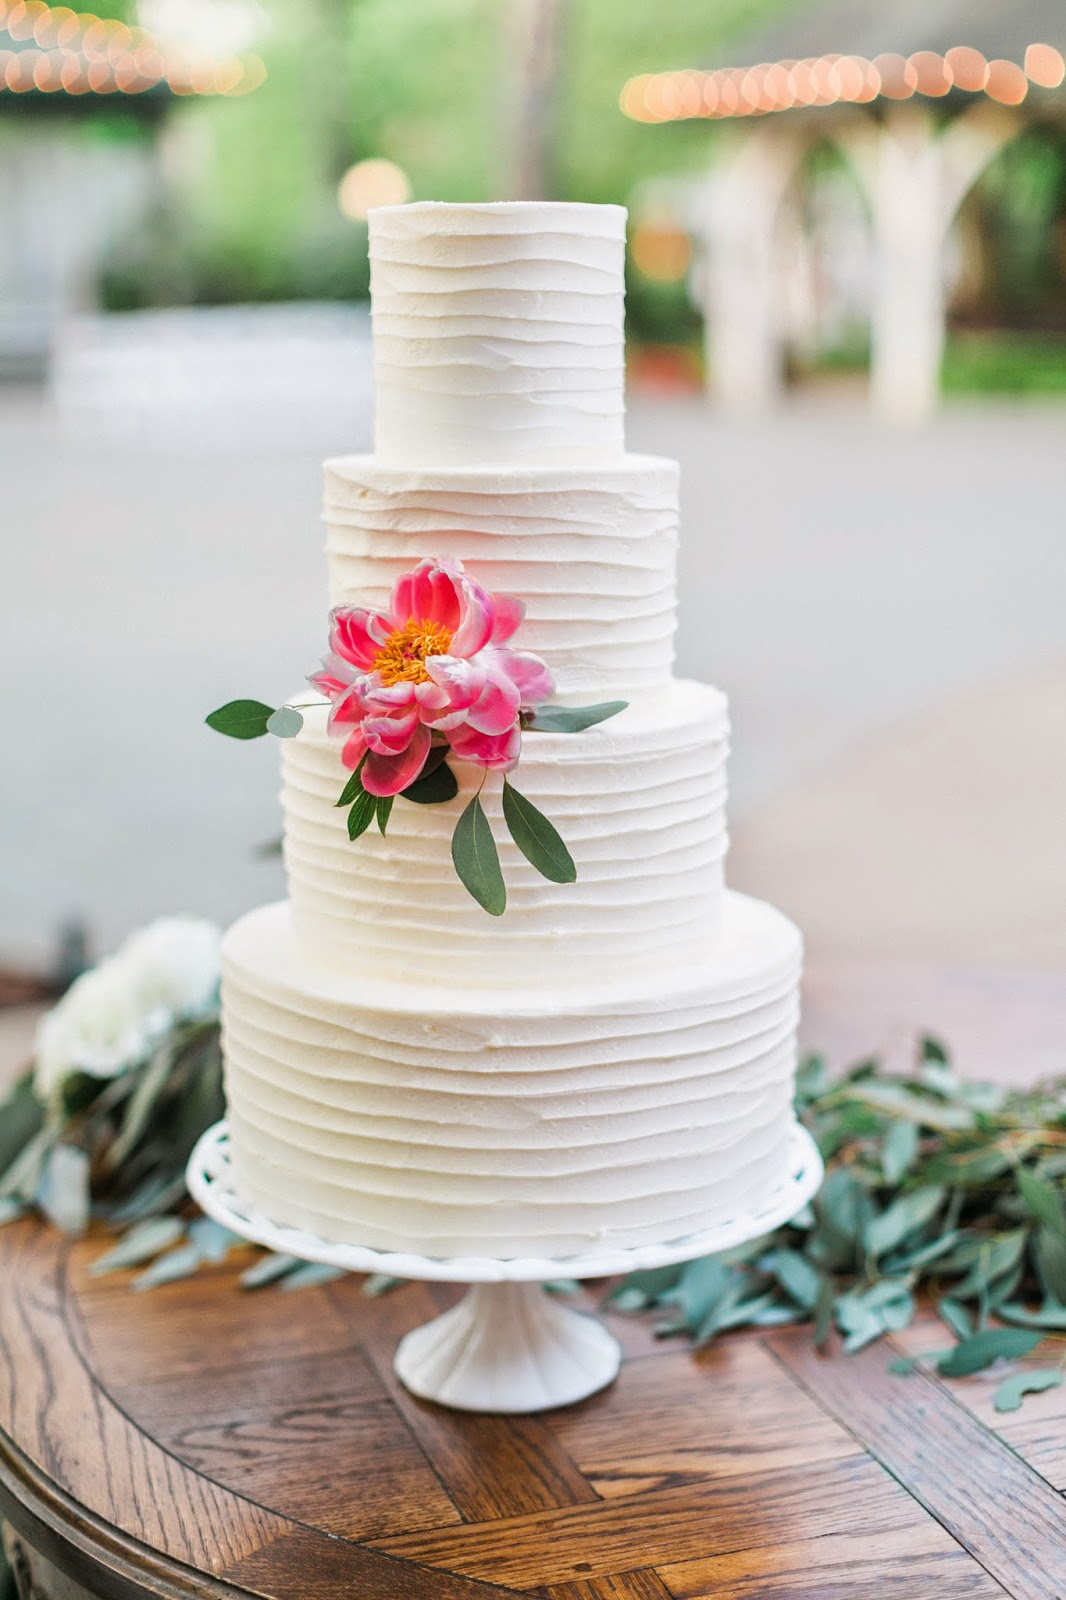 The Blooming Bride, DFW, Fort Worth, Texas, Wedding Flowers, wedding cake, sanford house